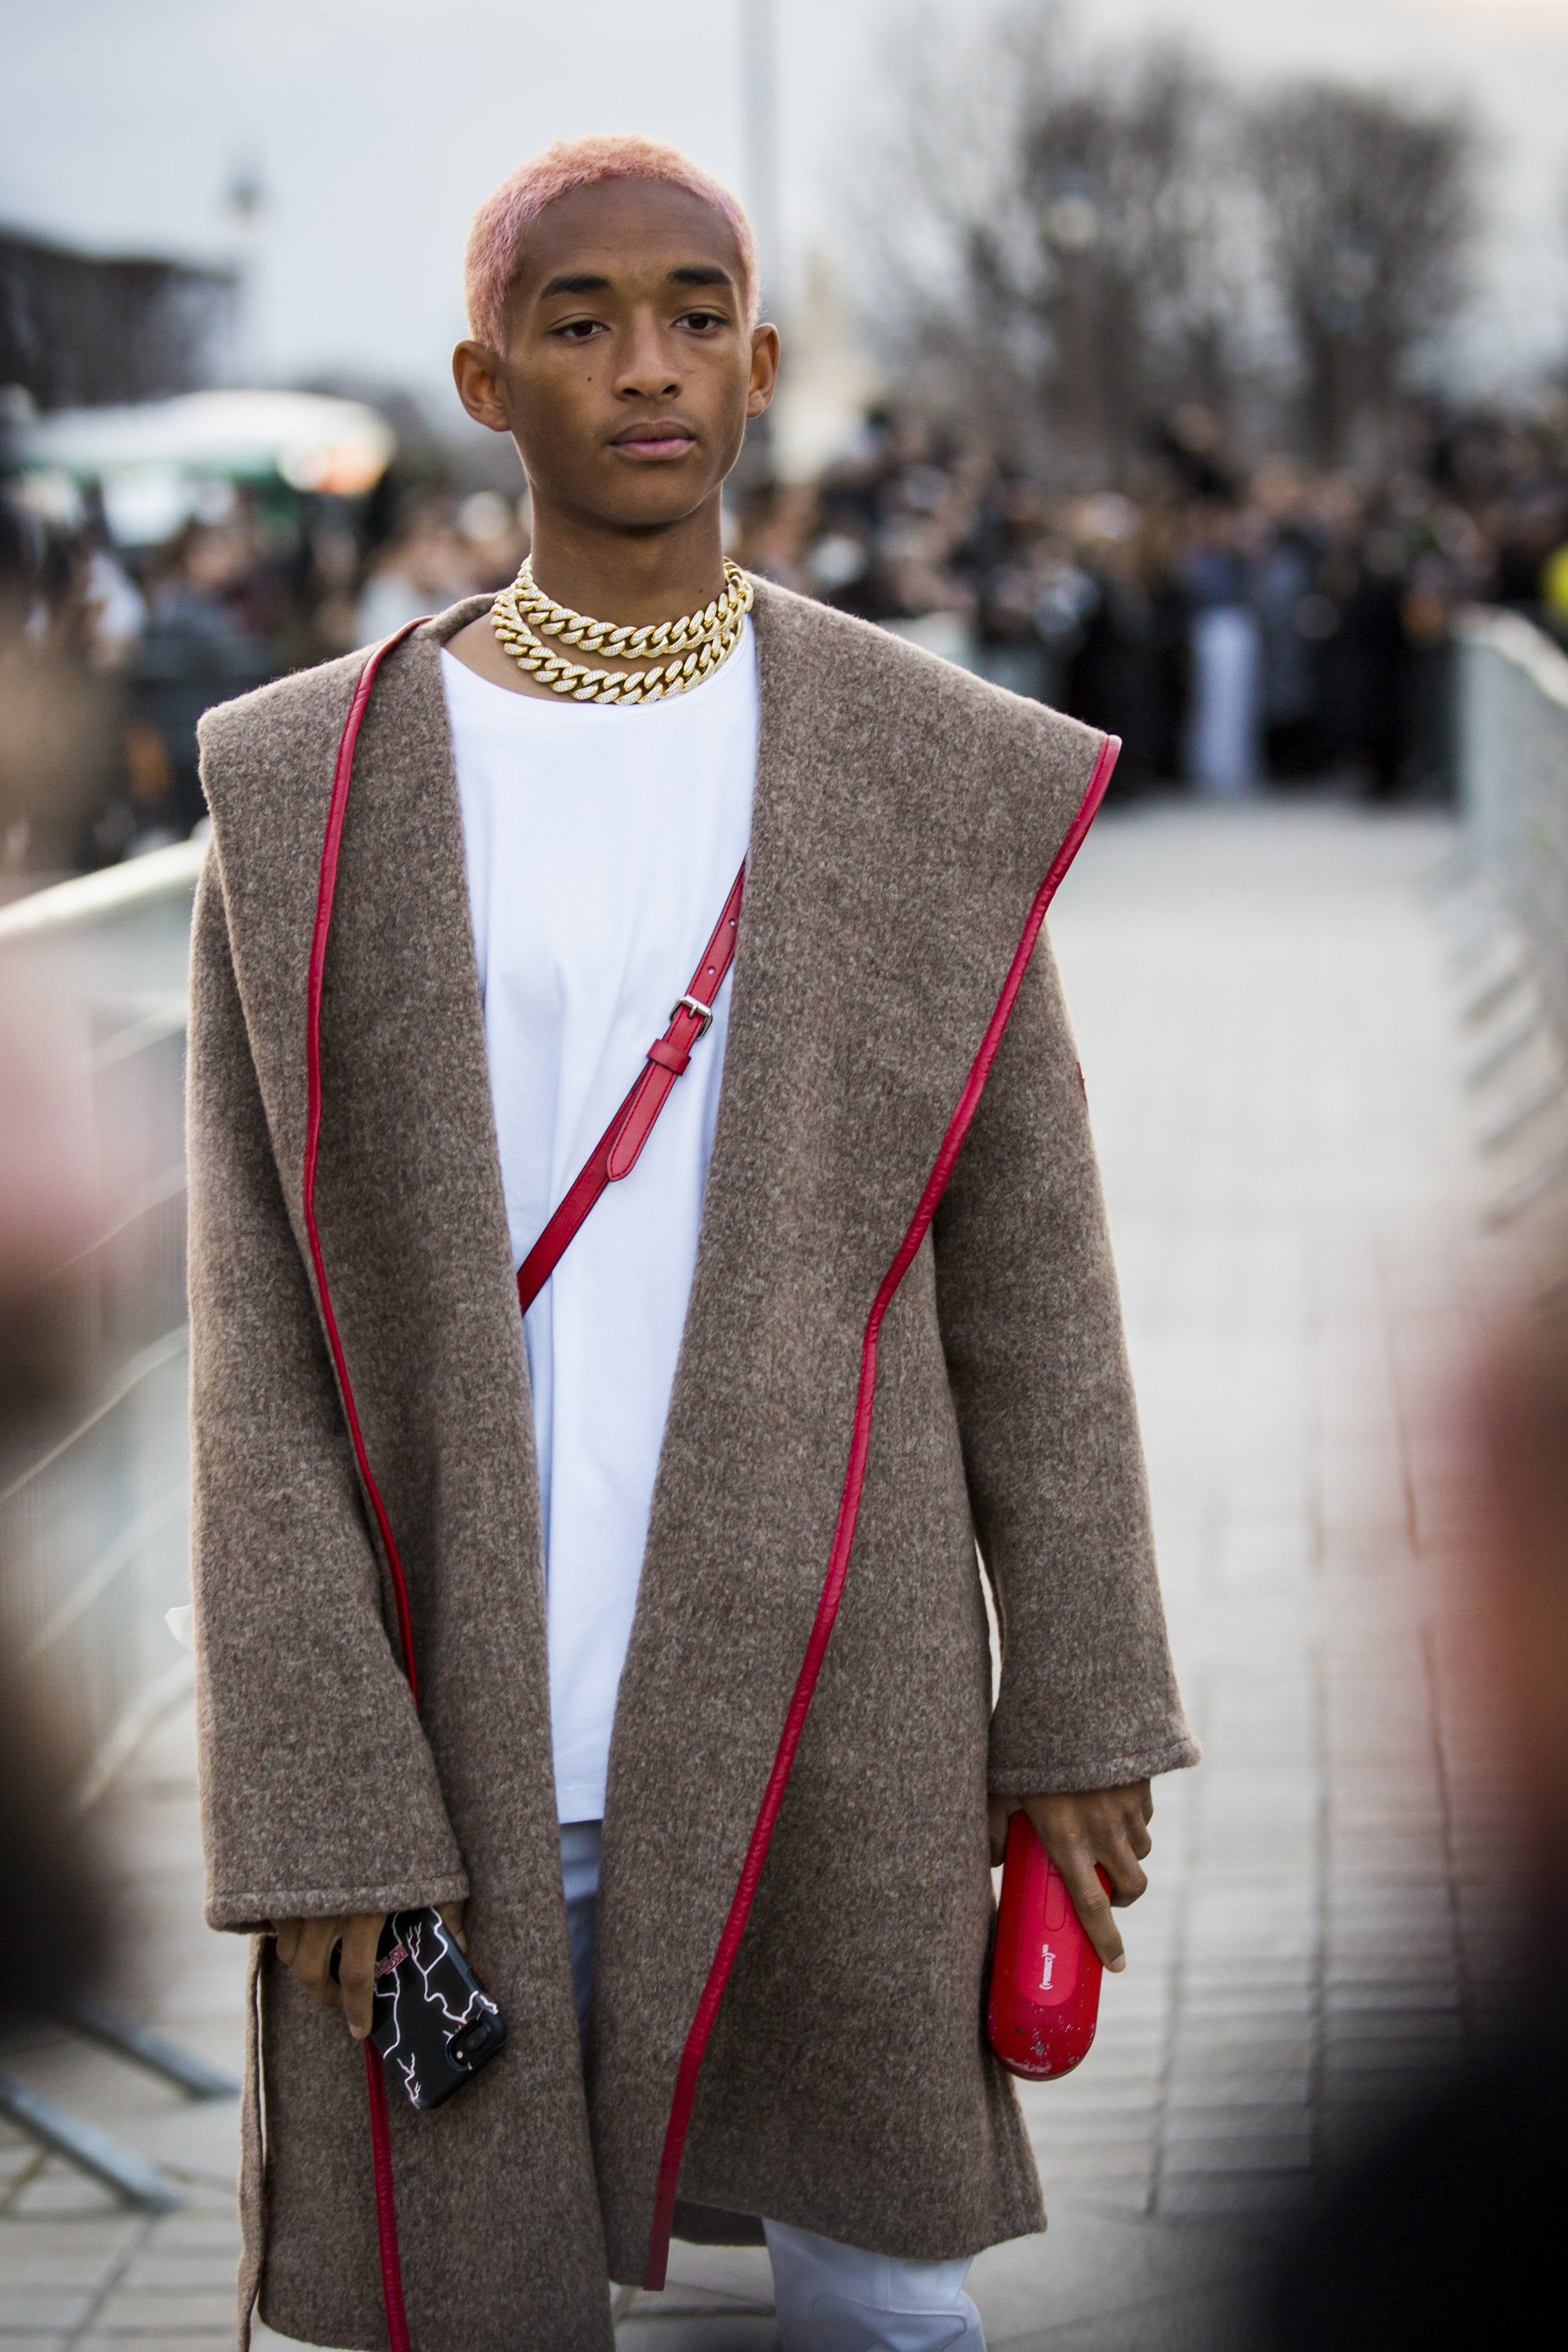 Image Credits: Getty Images / Claudio Lavenia | Jaden Smith, is seen in the streets of Paris before the Louis Vuitton show during Paris Fashion Week Womenswear Fall/Winter 2018/2019 on March 6, 2018 in Paris, France.